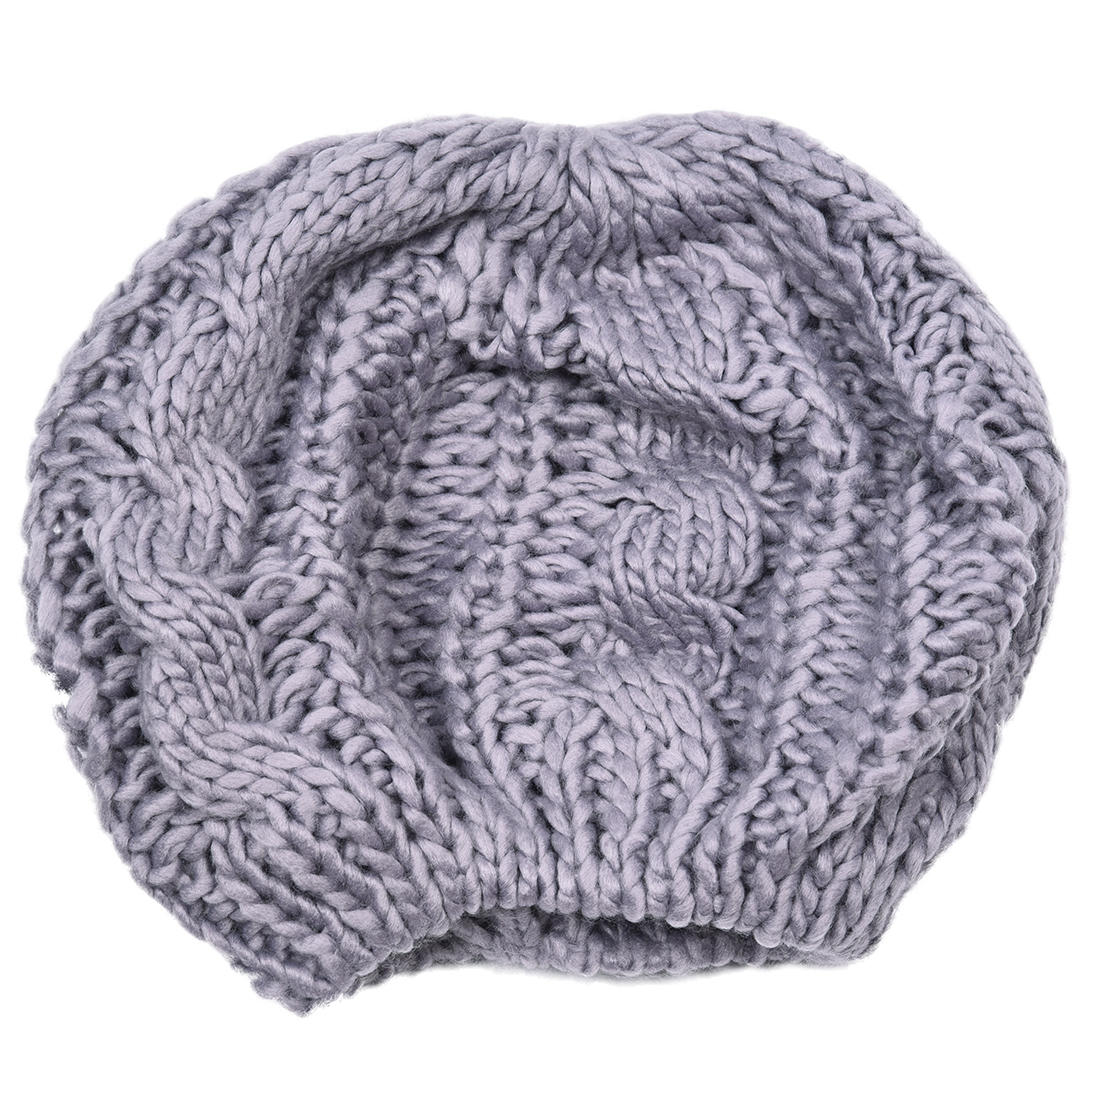 a61720f7c45 NEW Women Baggy Beret Chunky Knit Braided Beanie Hat Cap Light Grey-in  Berets from Men s Clothing   Accessories on Aliexpress.com